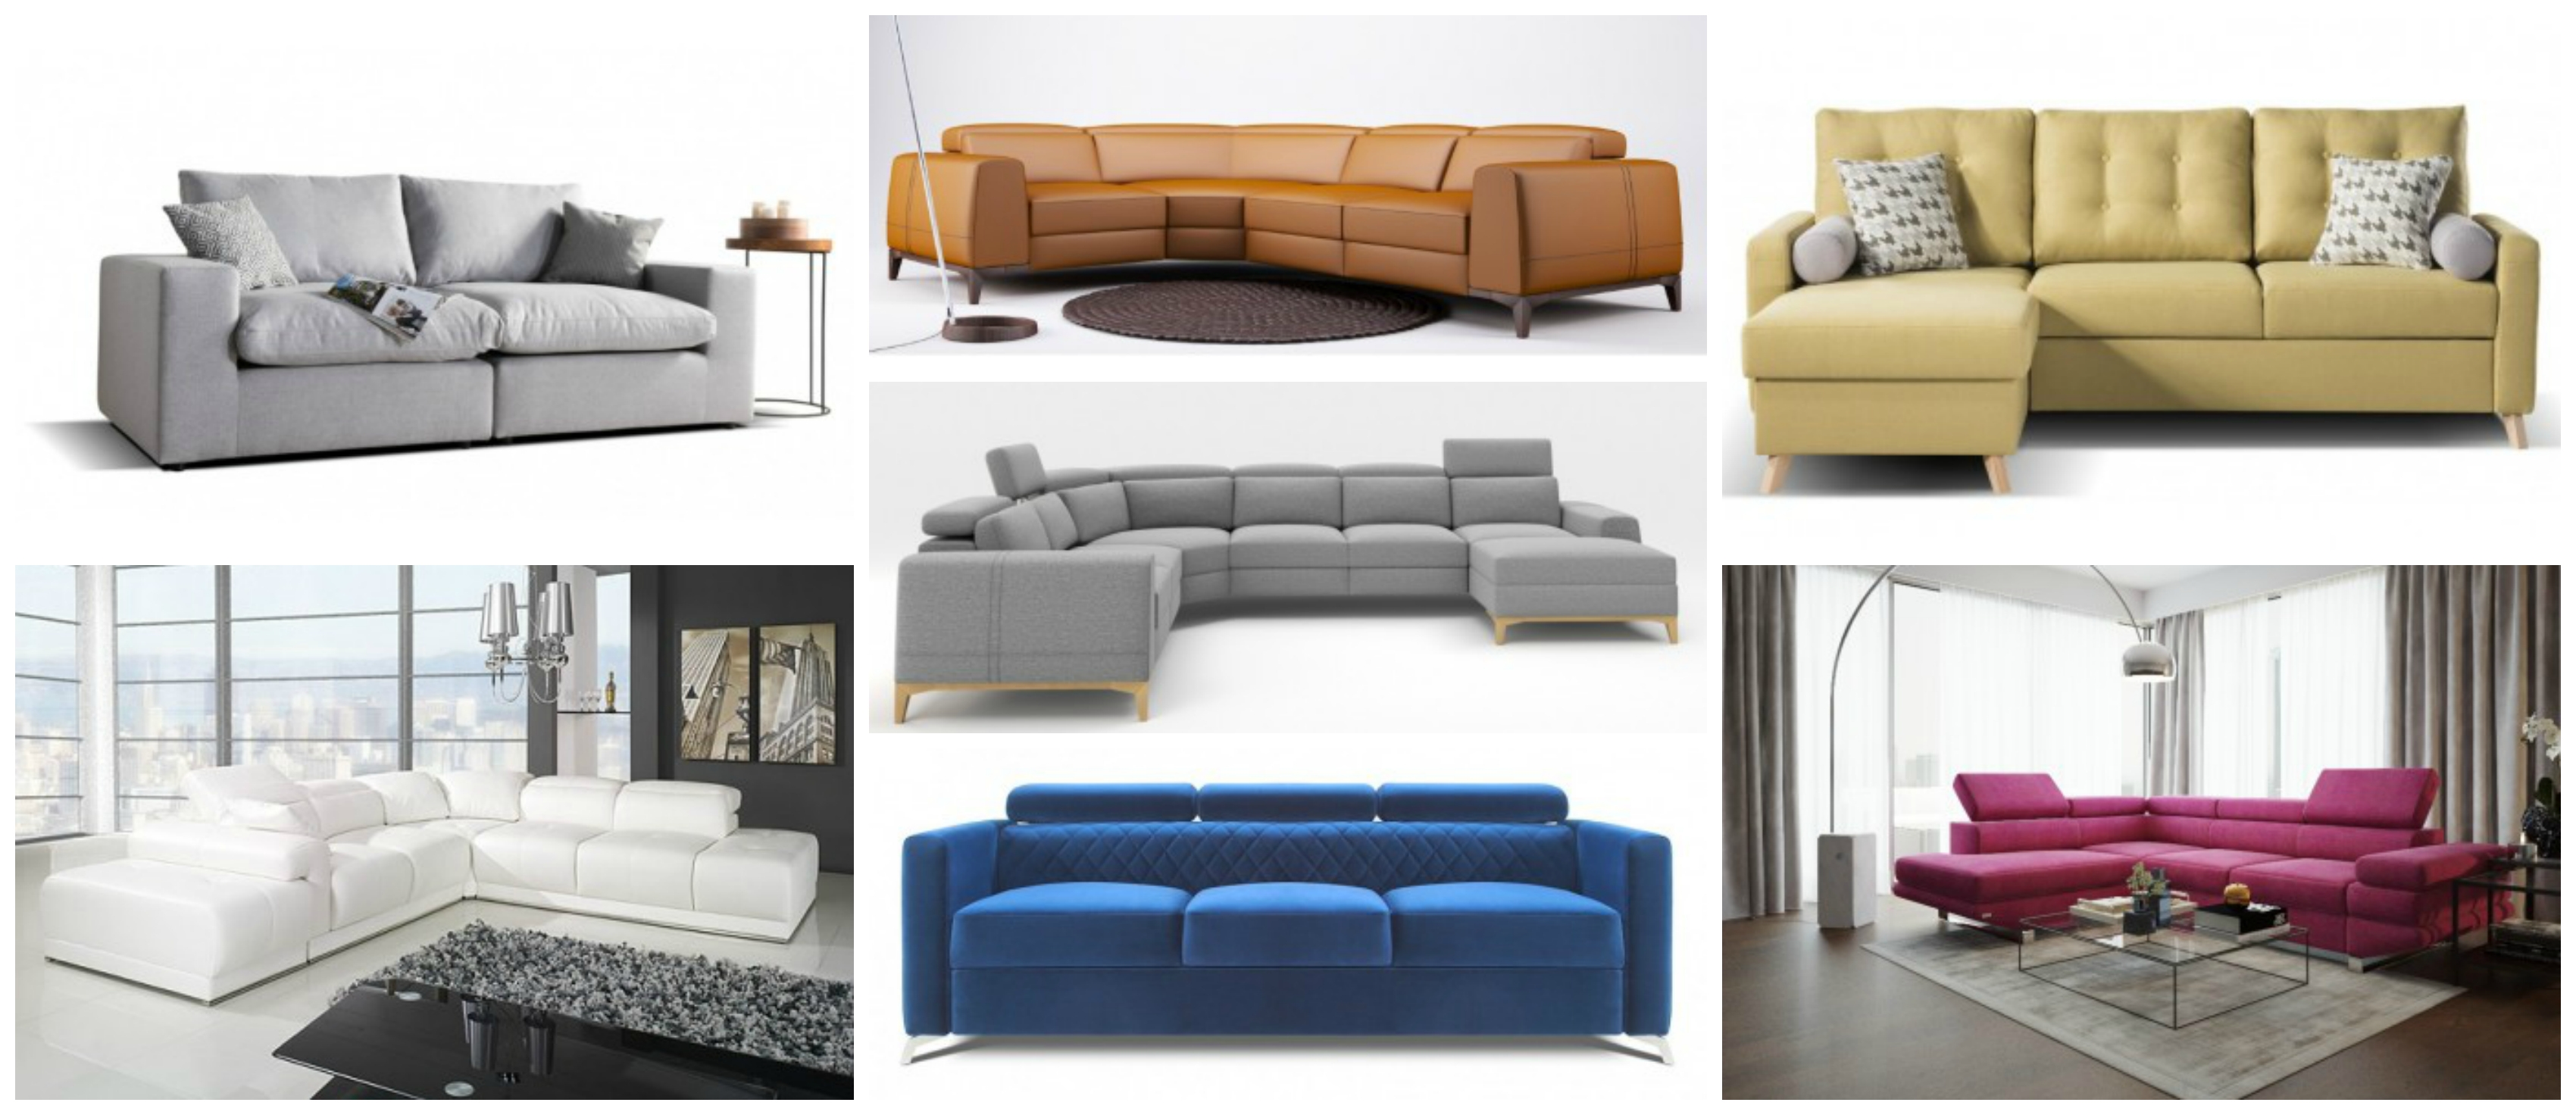 What kind of upholstery should you choose for a sofa or corner unit? Should it be from fabric or leather?